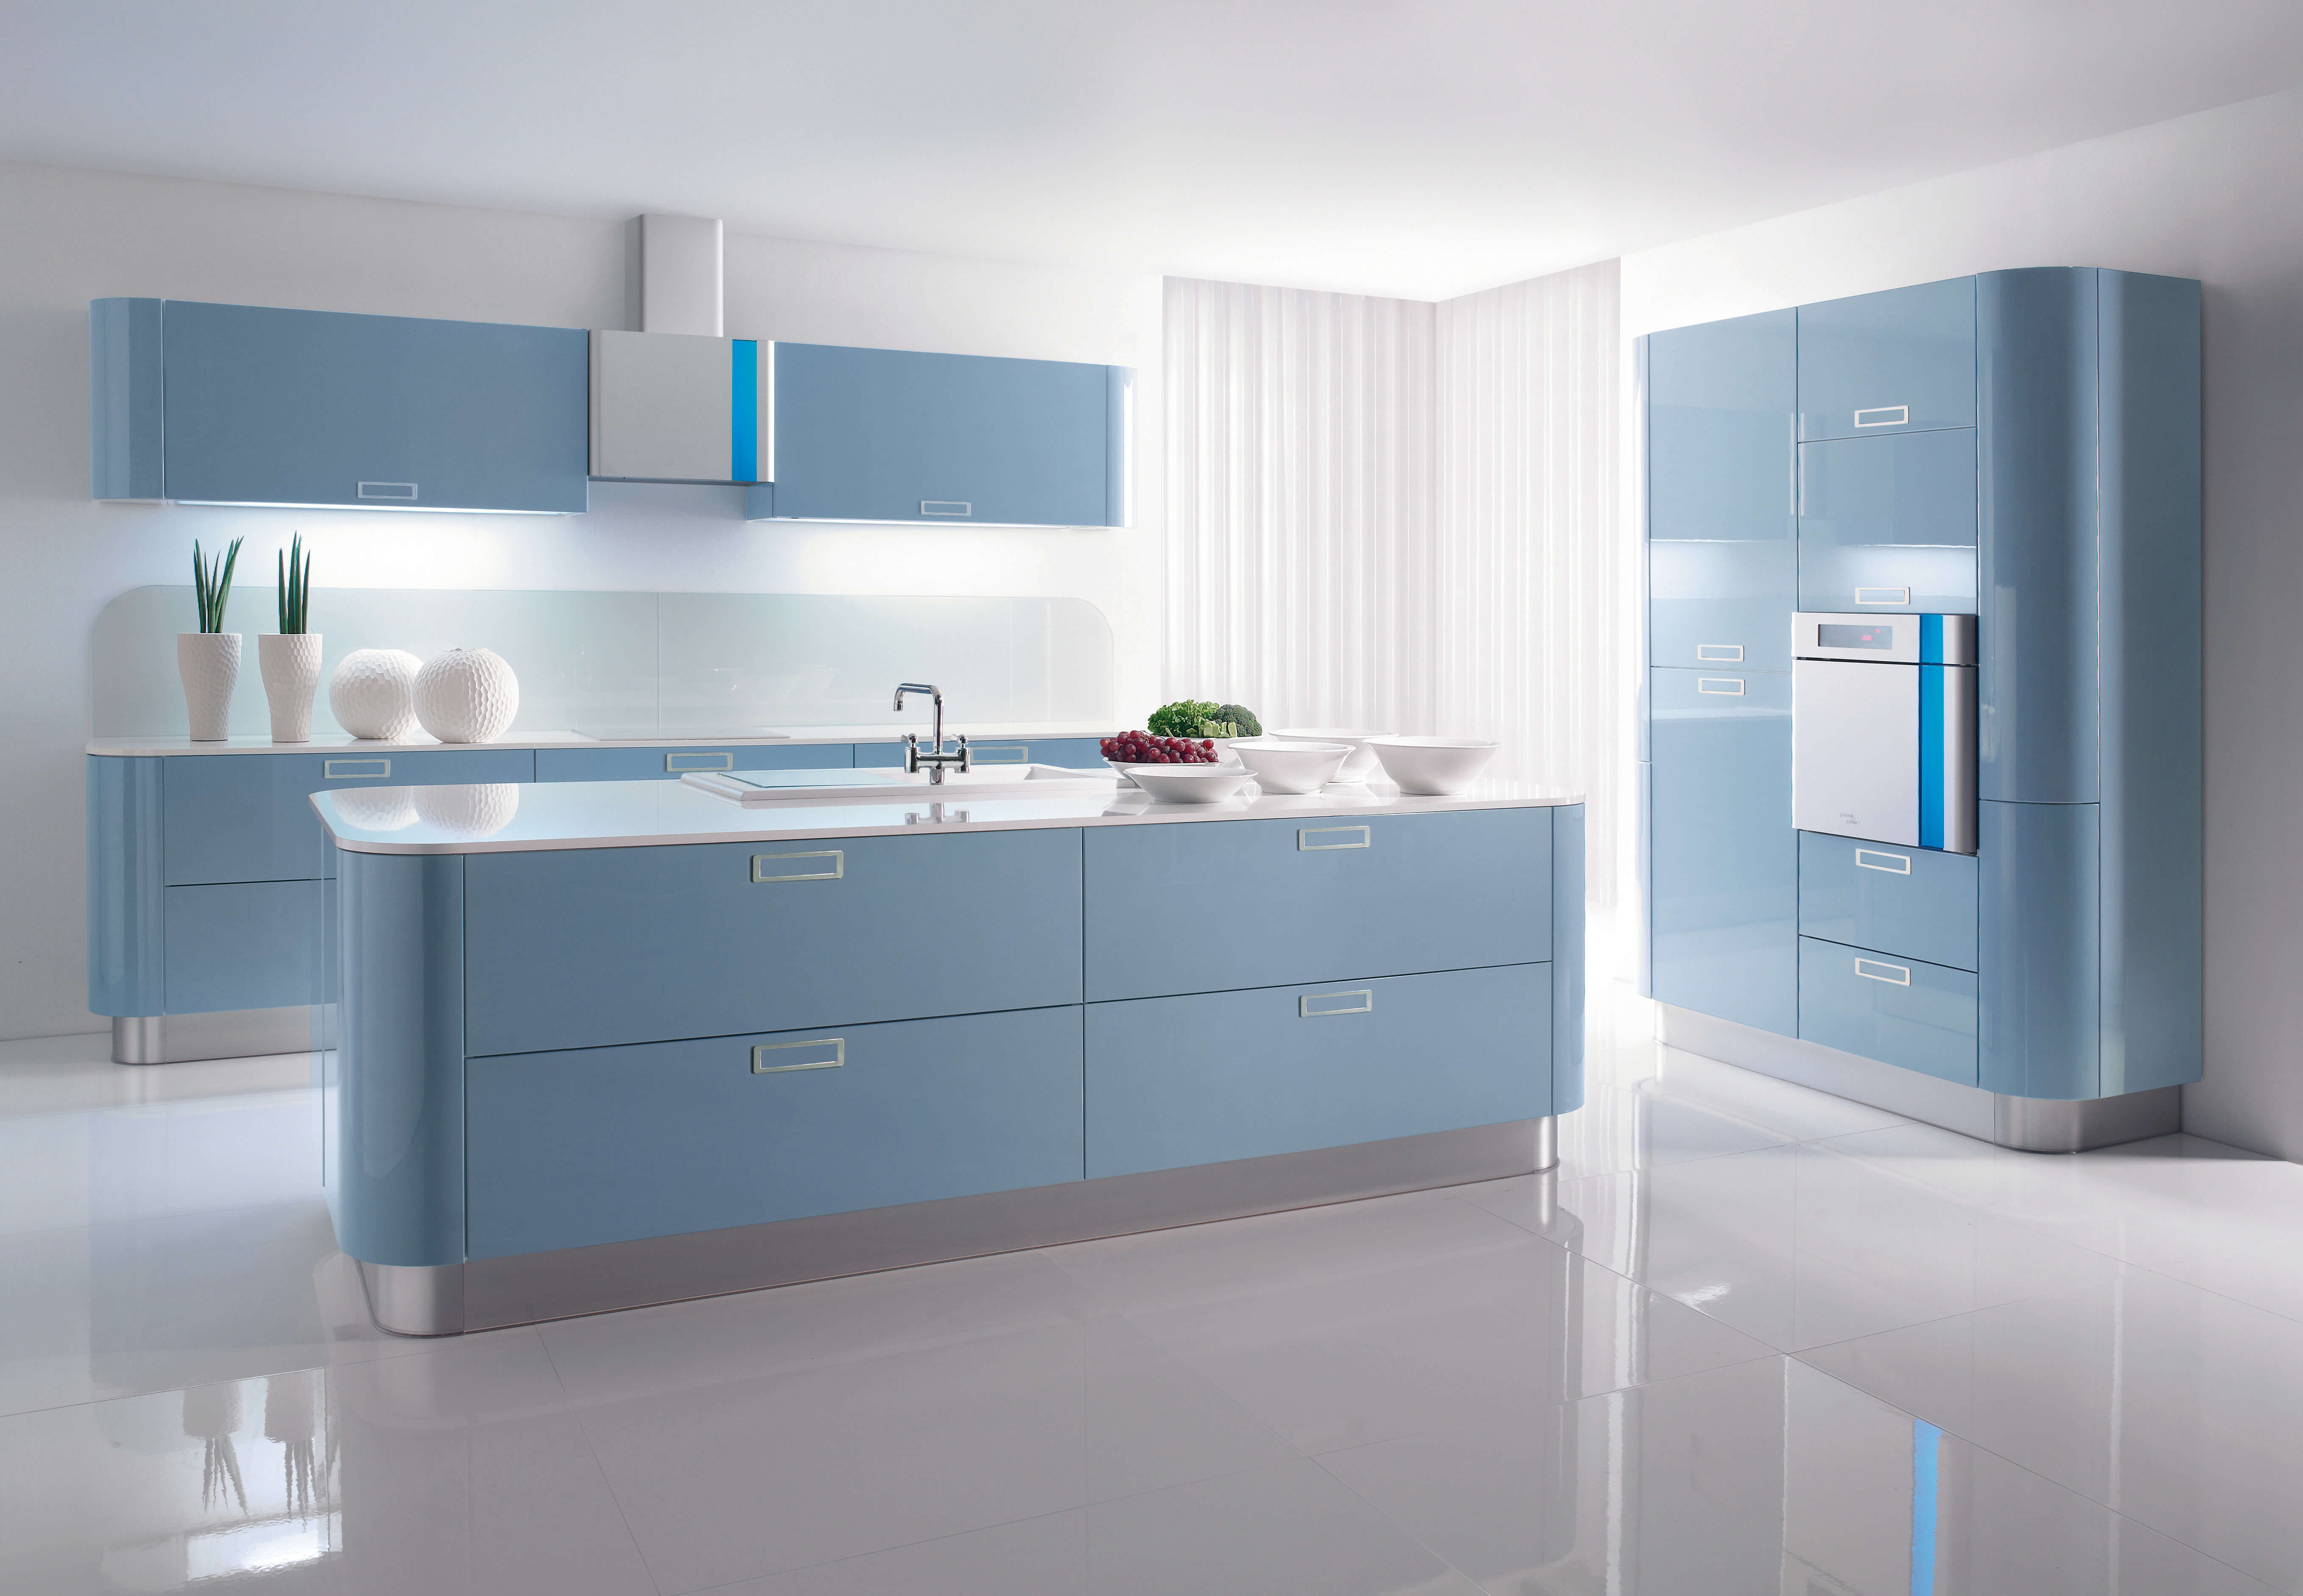 10 refreshing blue kitchen interior design ideas https for Kitchen ideaa